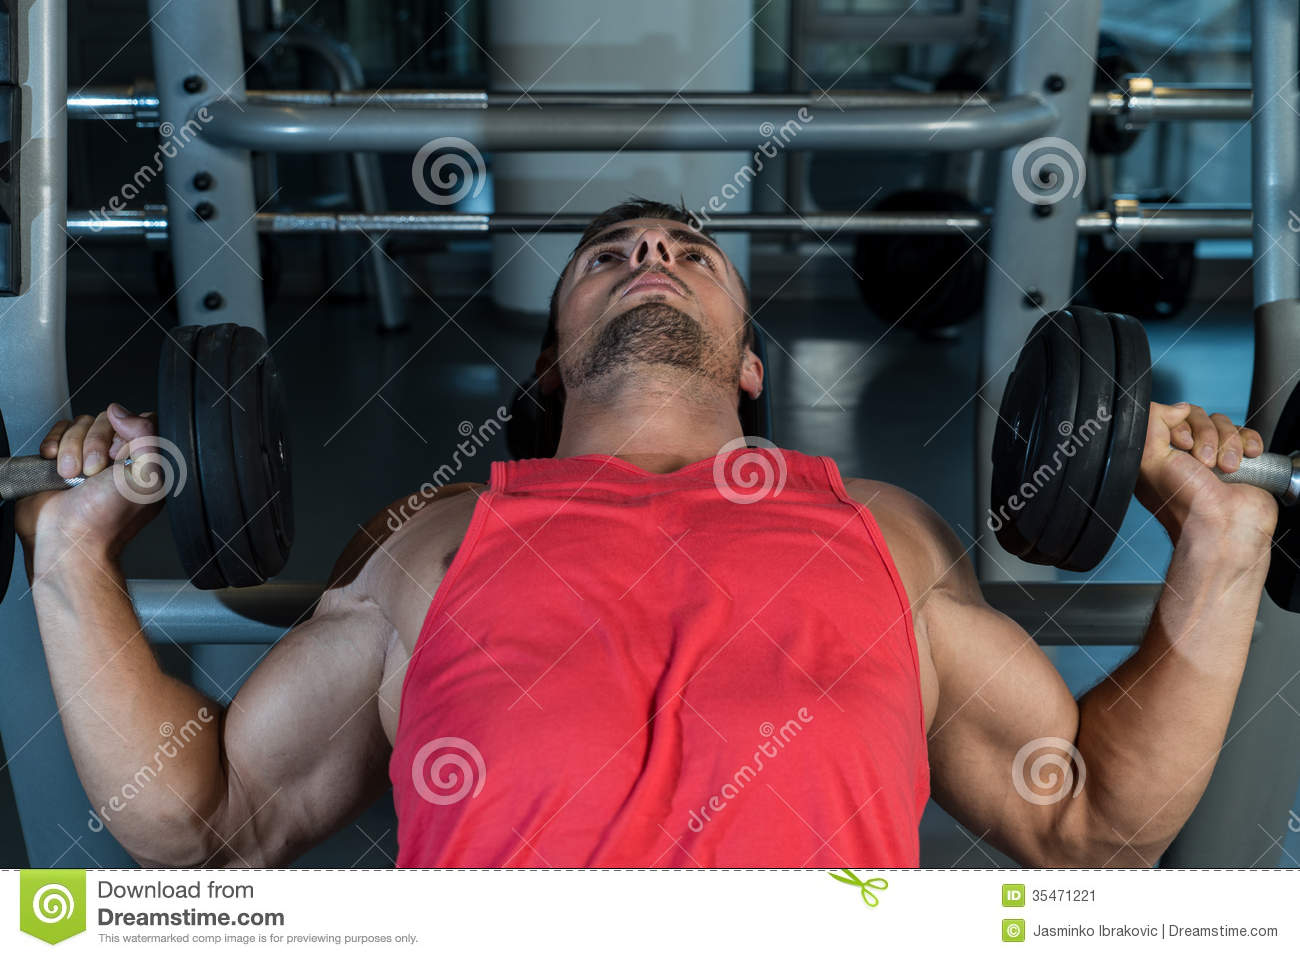 Men Working Out With Dumbbells Stock Image - Image: 35471221